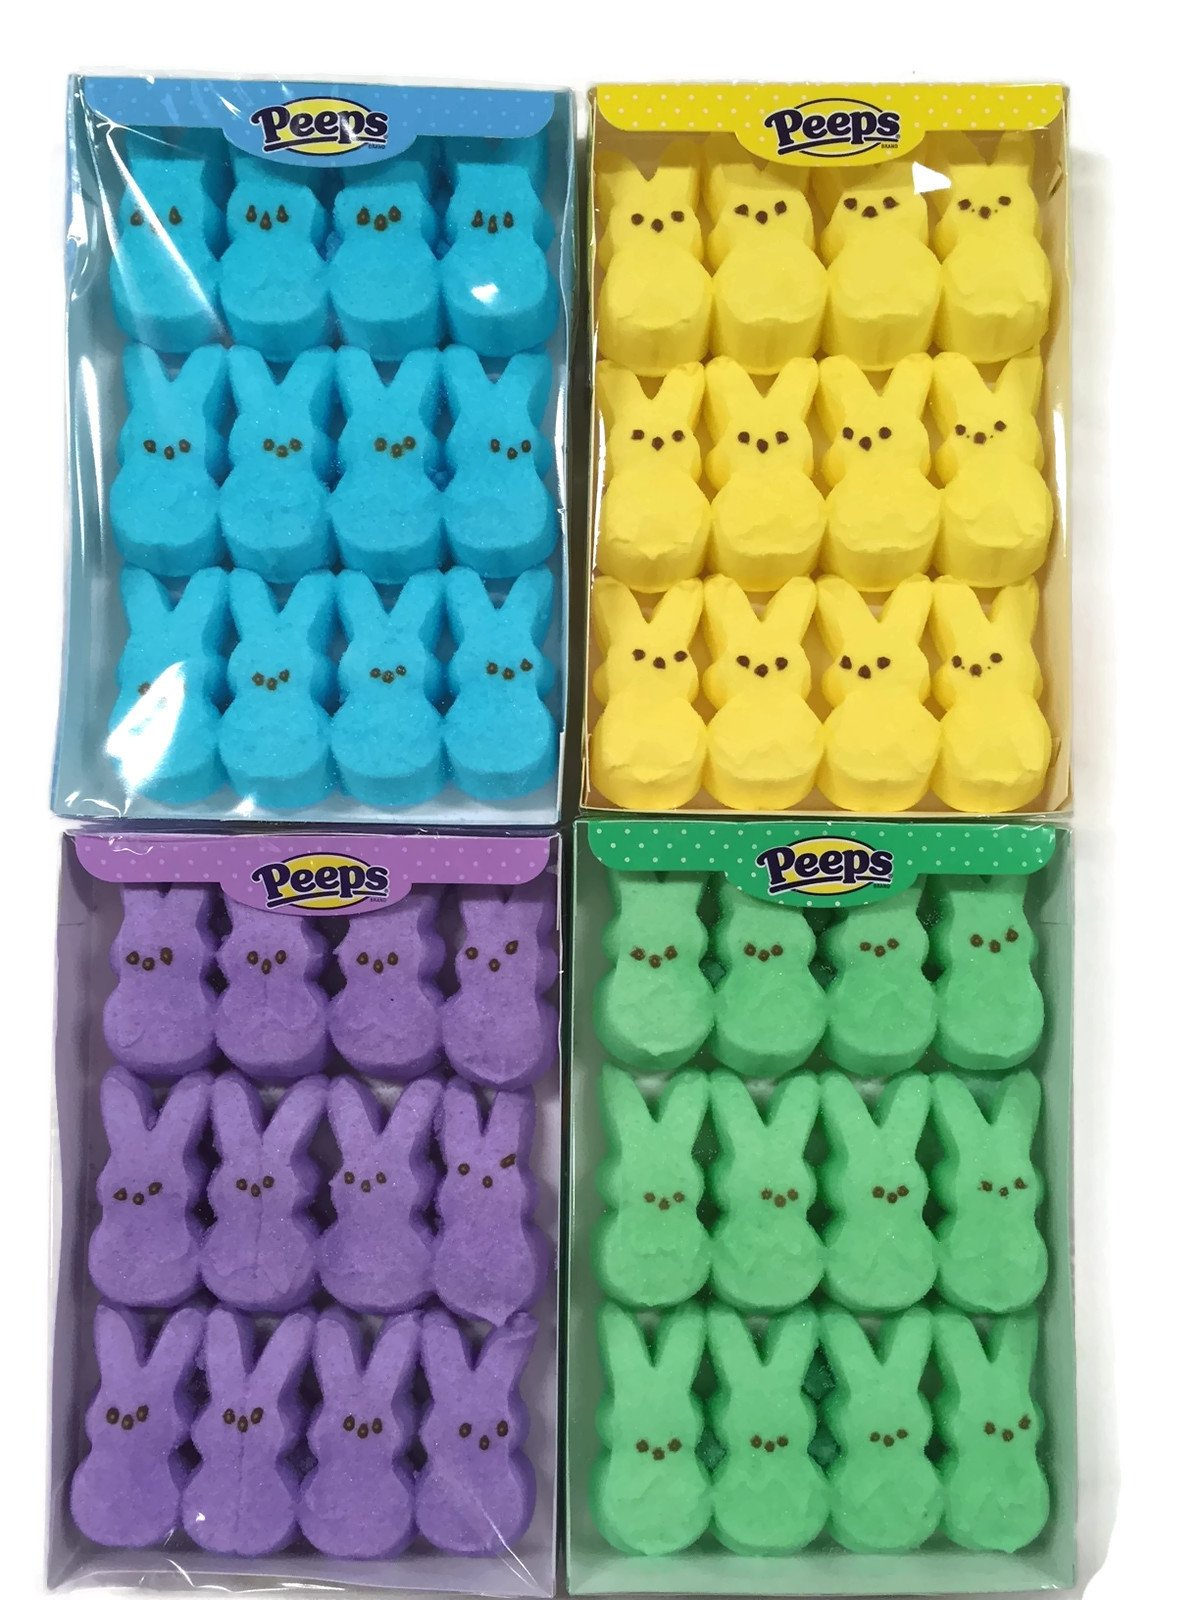 Easter Marshmallow Peeps Bunnies Variety Pack 4 Count by PEEPS (Image #1)